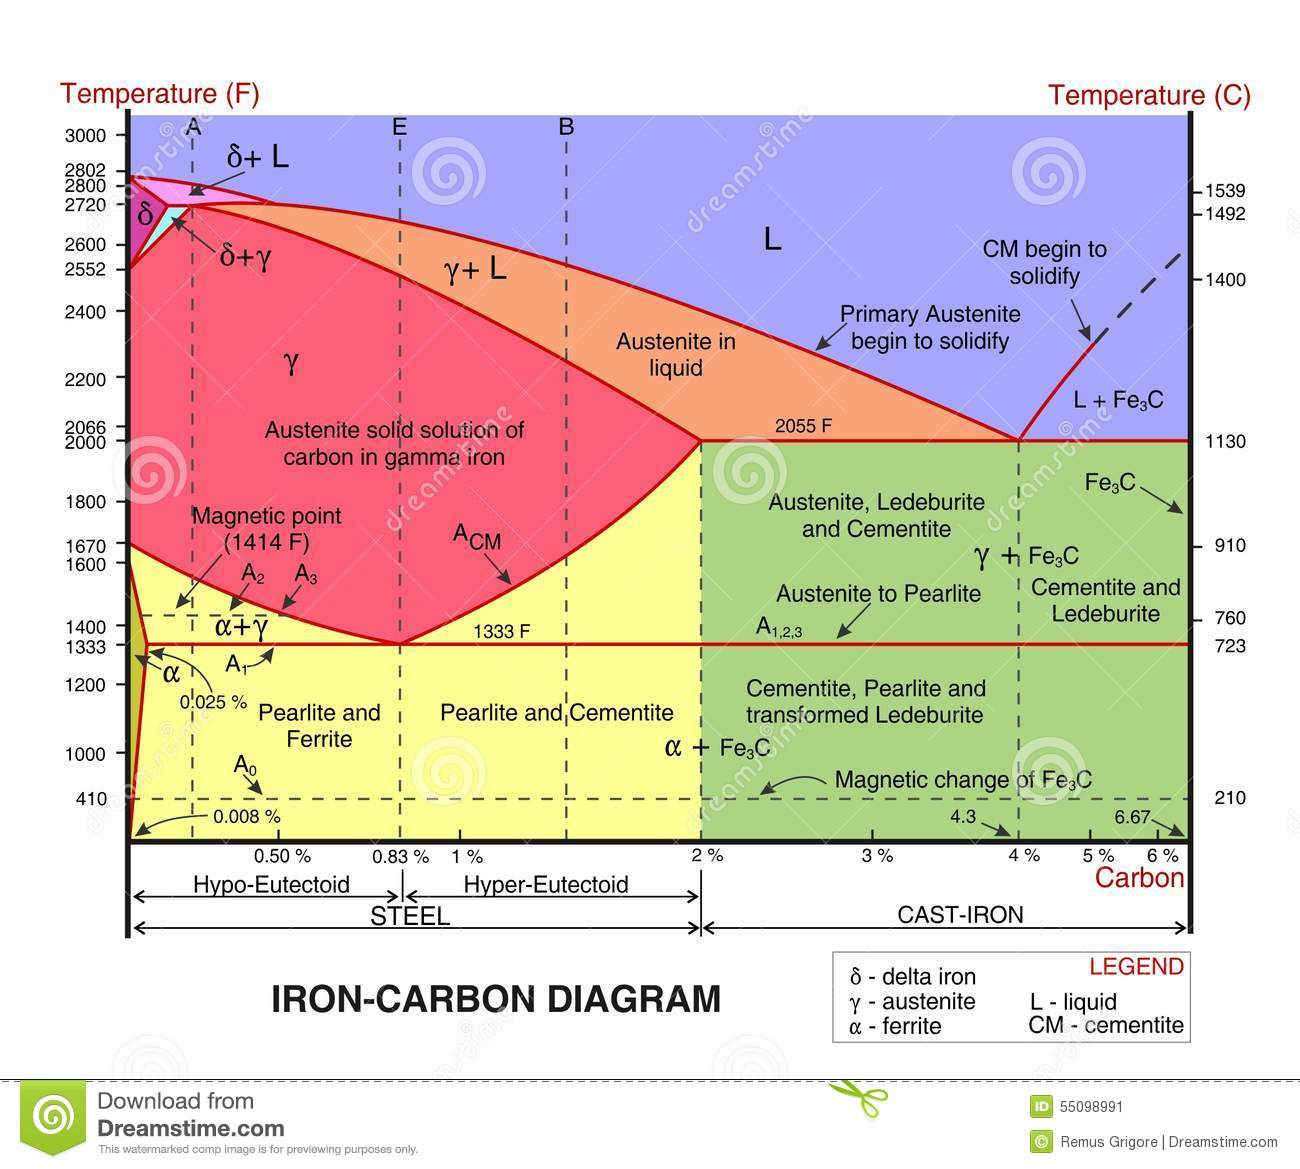 Hd wallpapers iron carbon phase diagram fgpatternhde get free high quality hd wallpapers iron carbon phase diagram pooptronica Gallery